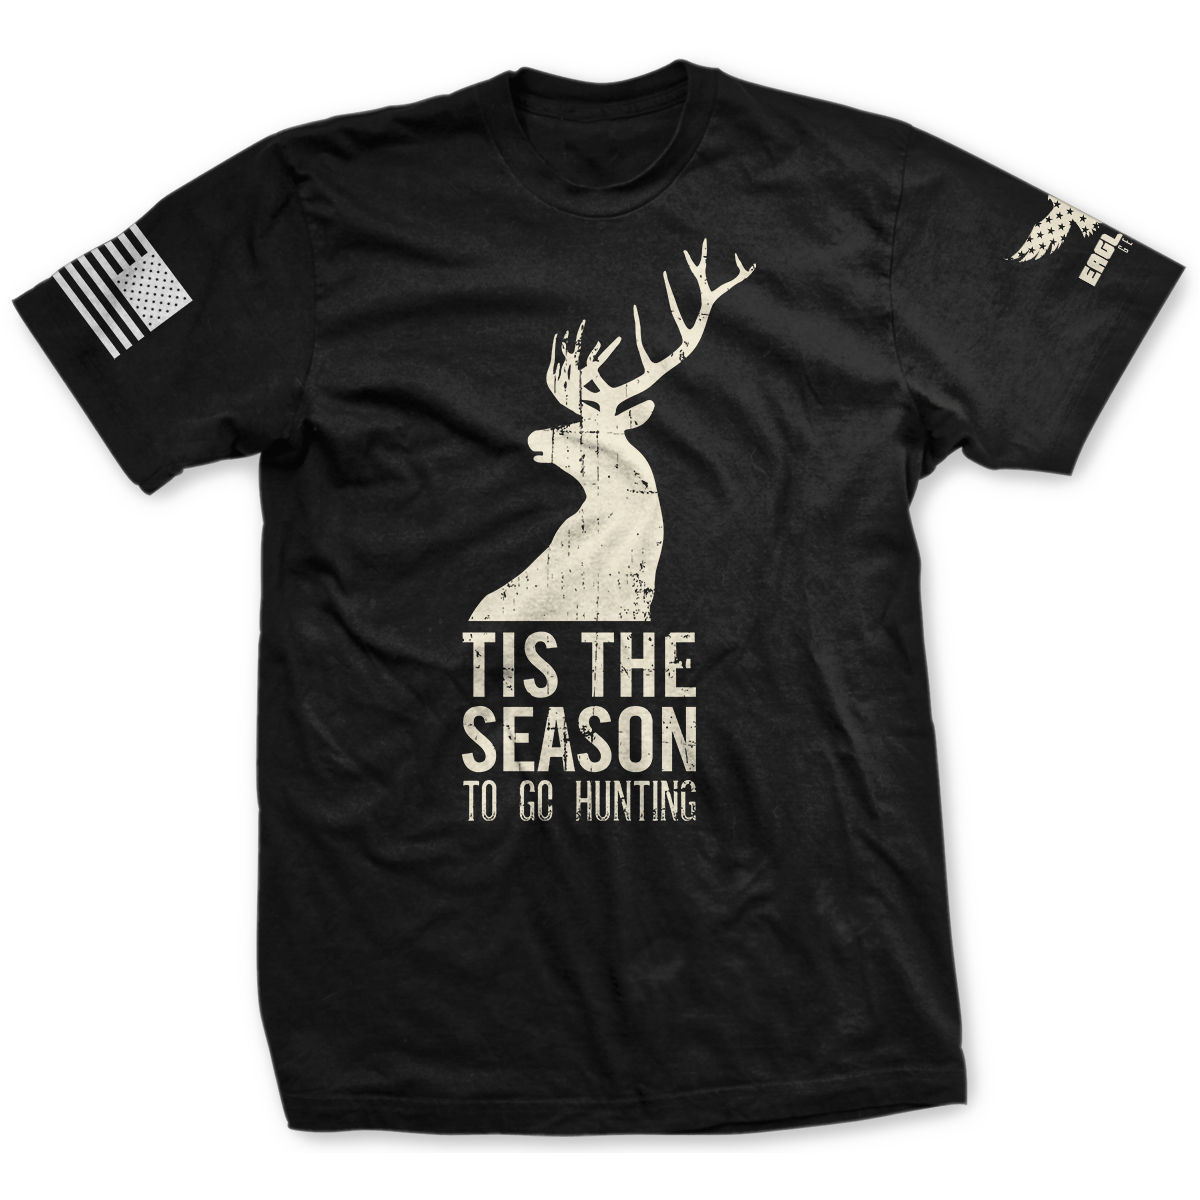 Tis The Season Hunting Tee